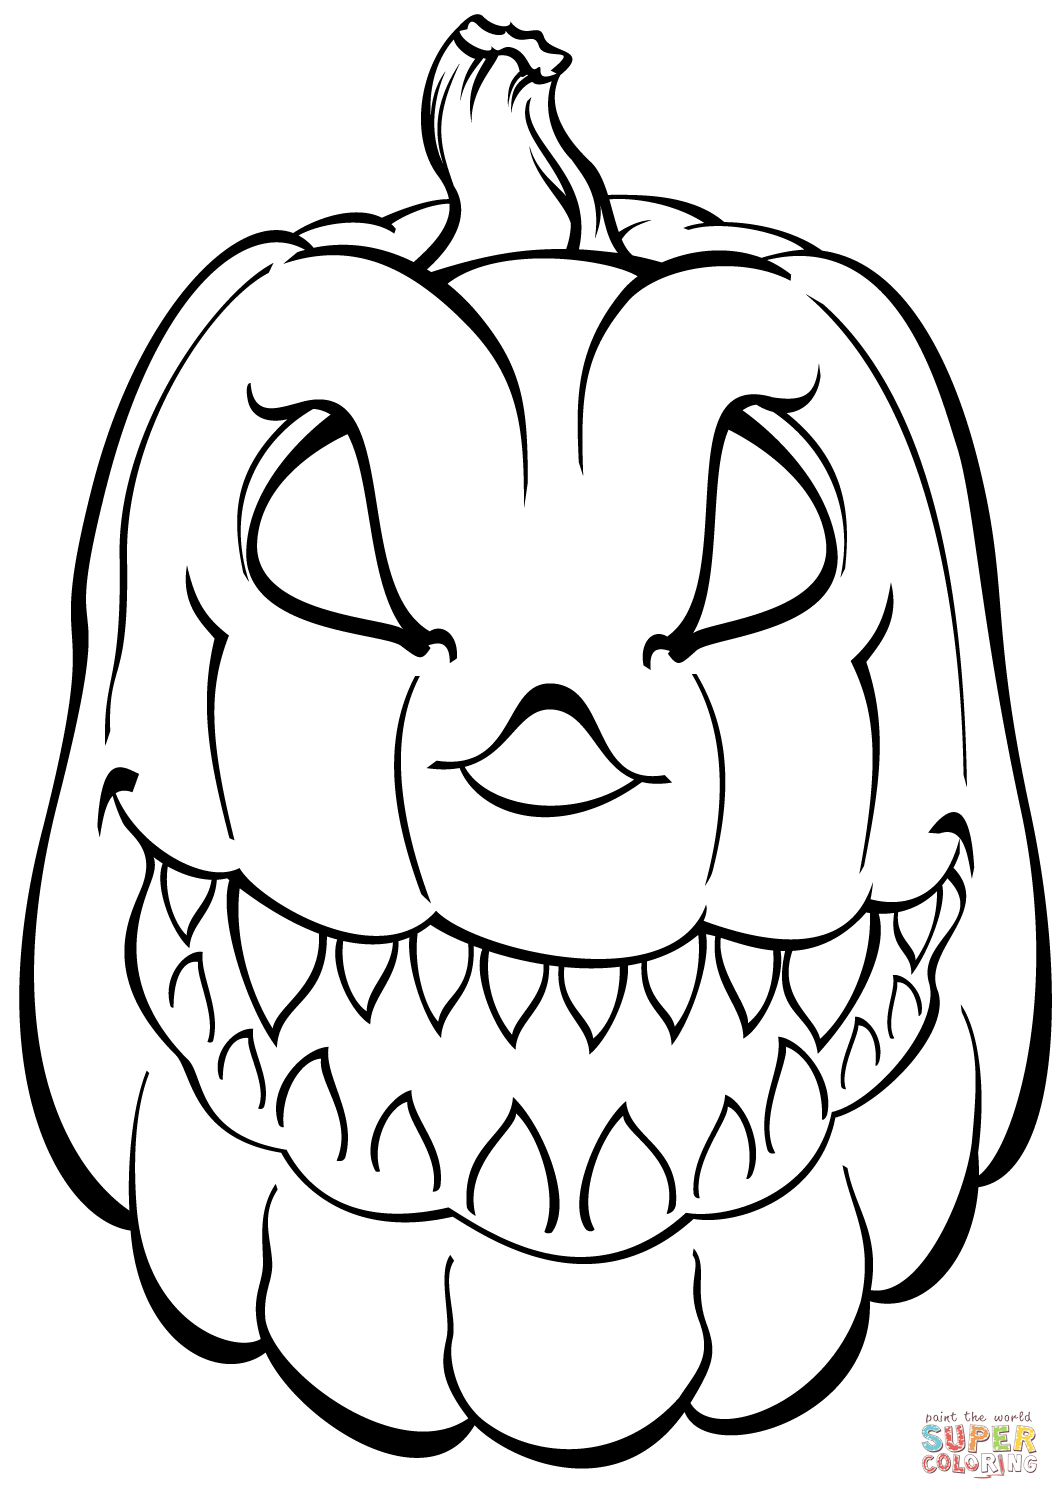 Halloween Pumpkin Coloring Pages Printables Scary Pumpkin Coloring Page Free Printable Coloring Pages